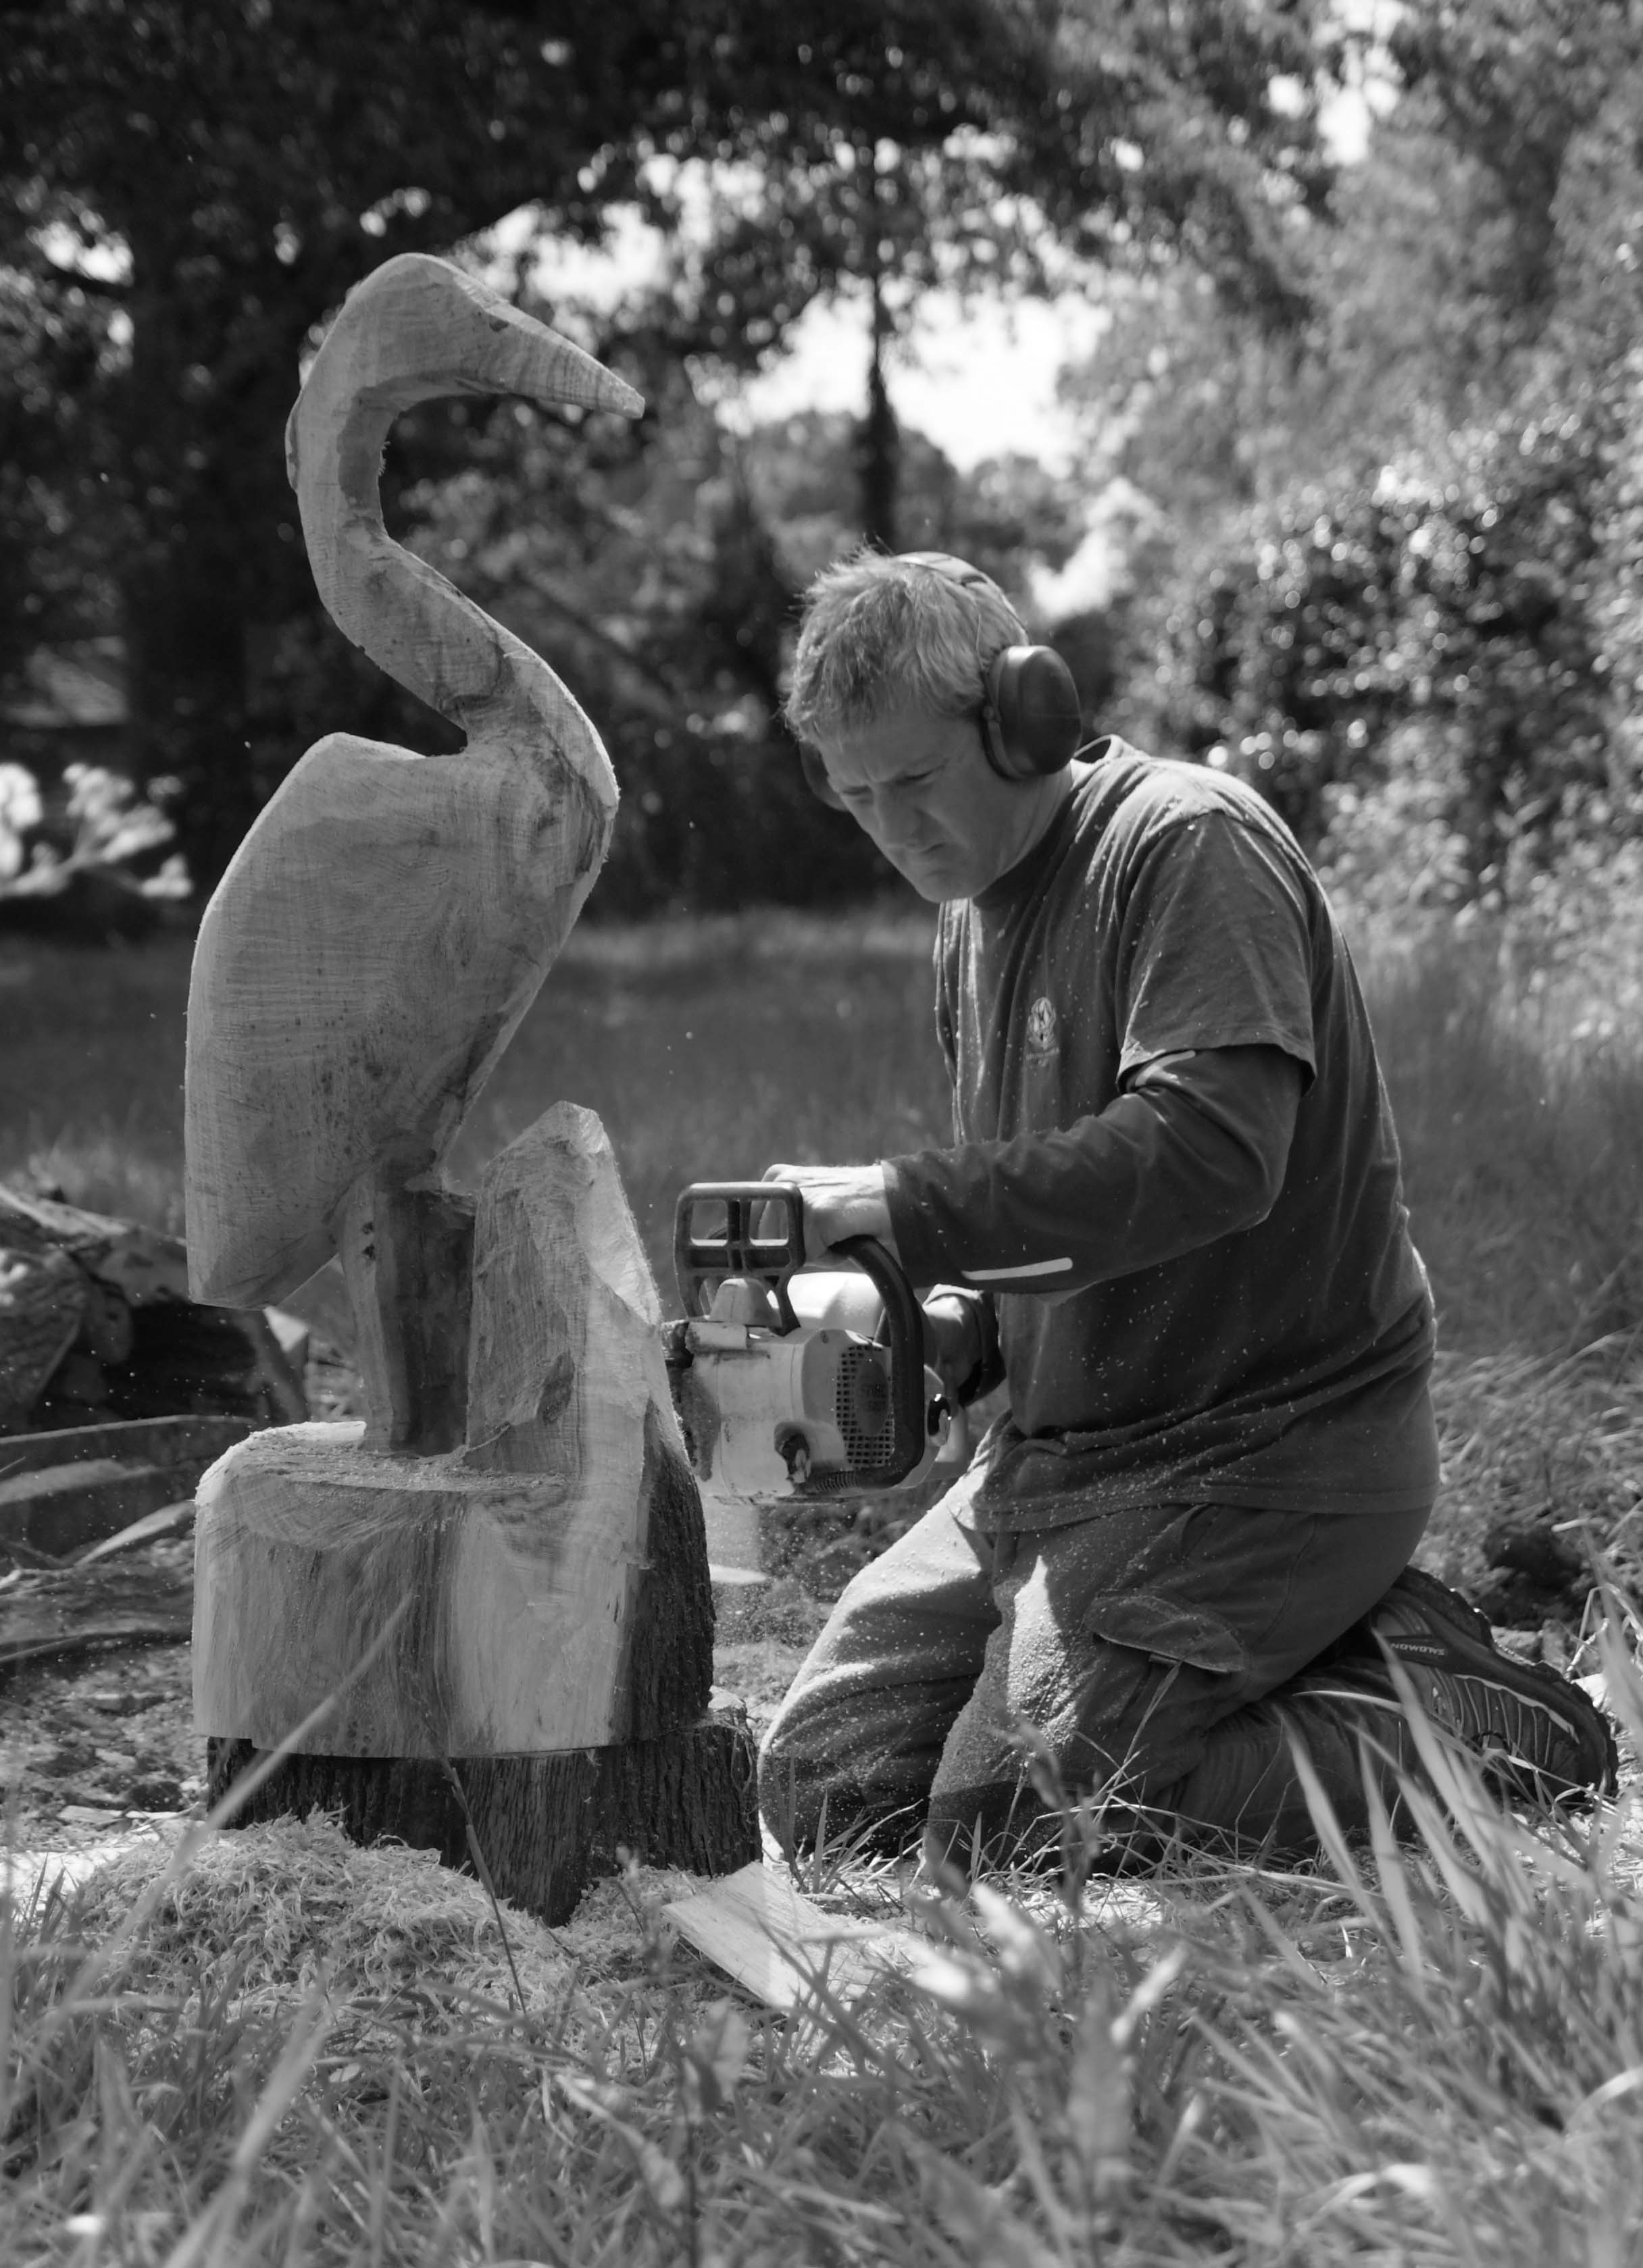 20140523 Heron Carving @ Pluckley (23).jpg